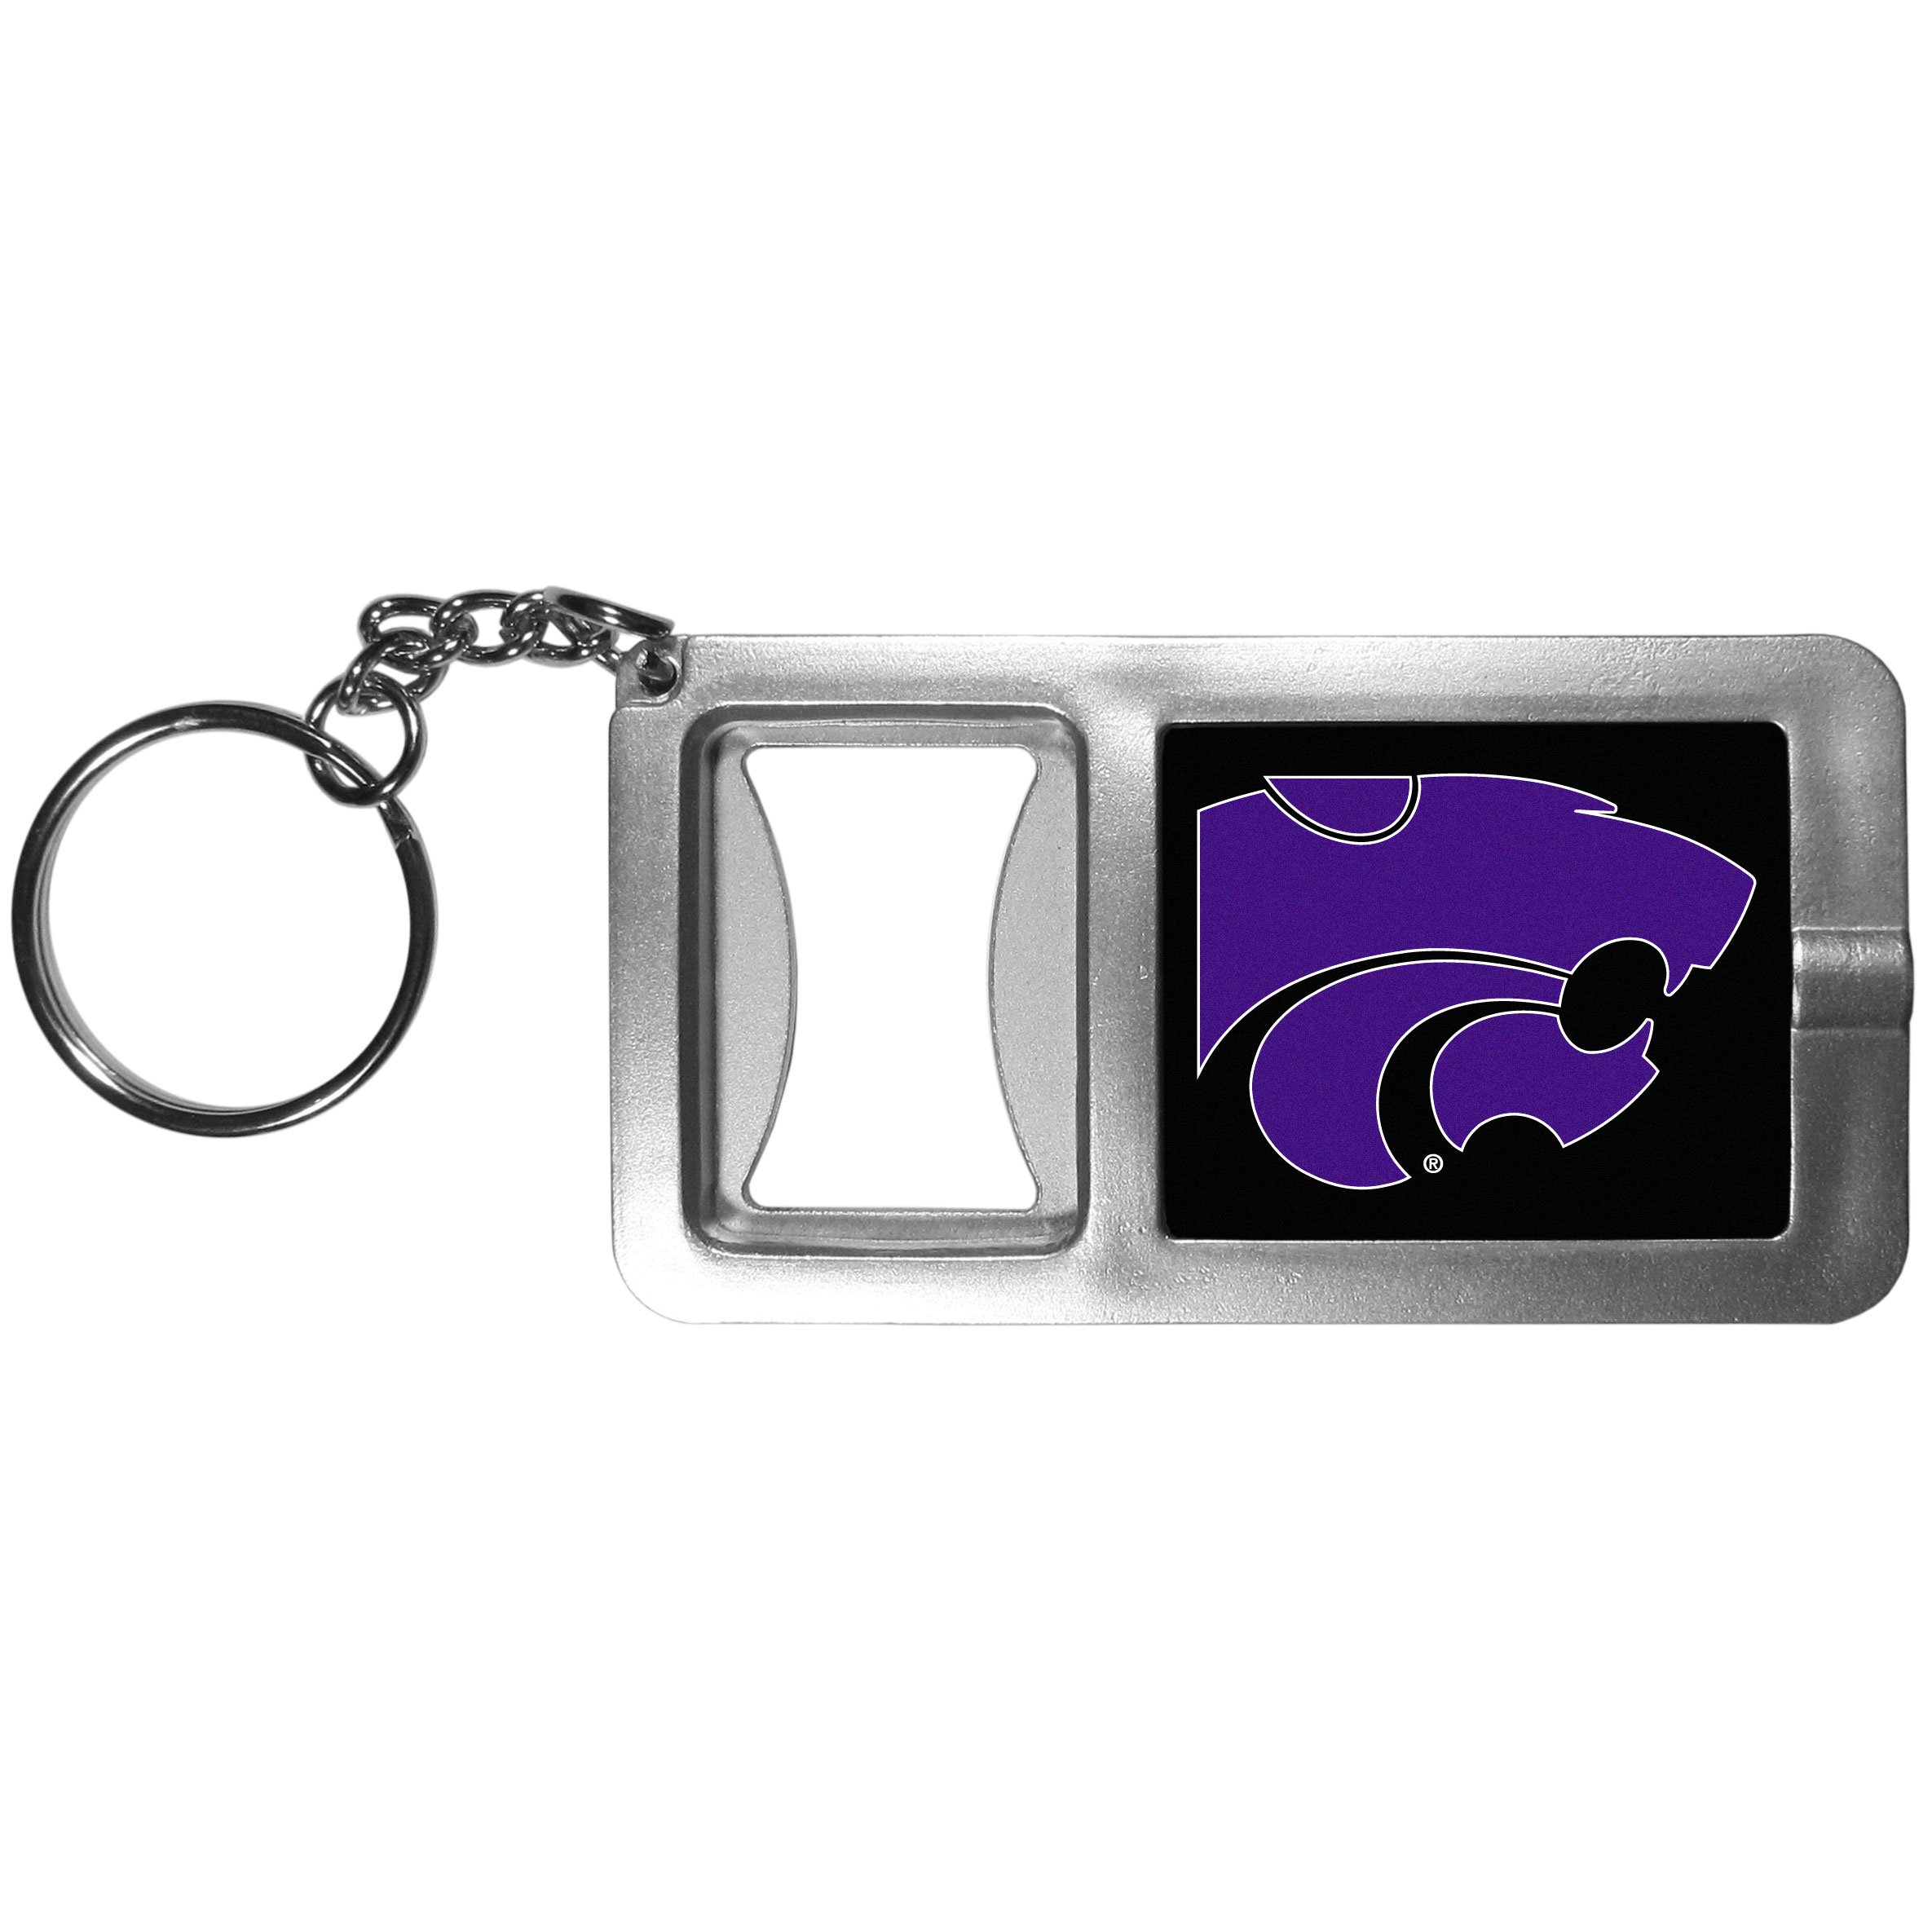 Kansas St. Wildcats Flashlight Key Chain with Bottle Opener - Never be without light with our Kansas St. Wildcats flashlight keychain that features a handy bottle opener feature. This versatile key chain is perfect for camping and travel and is a great way to show off your team pride!